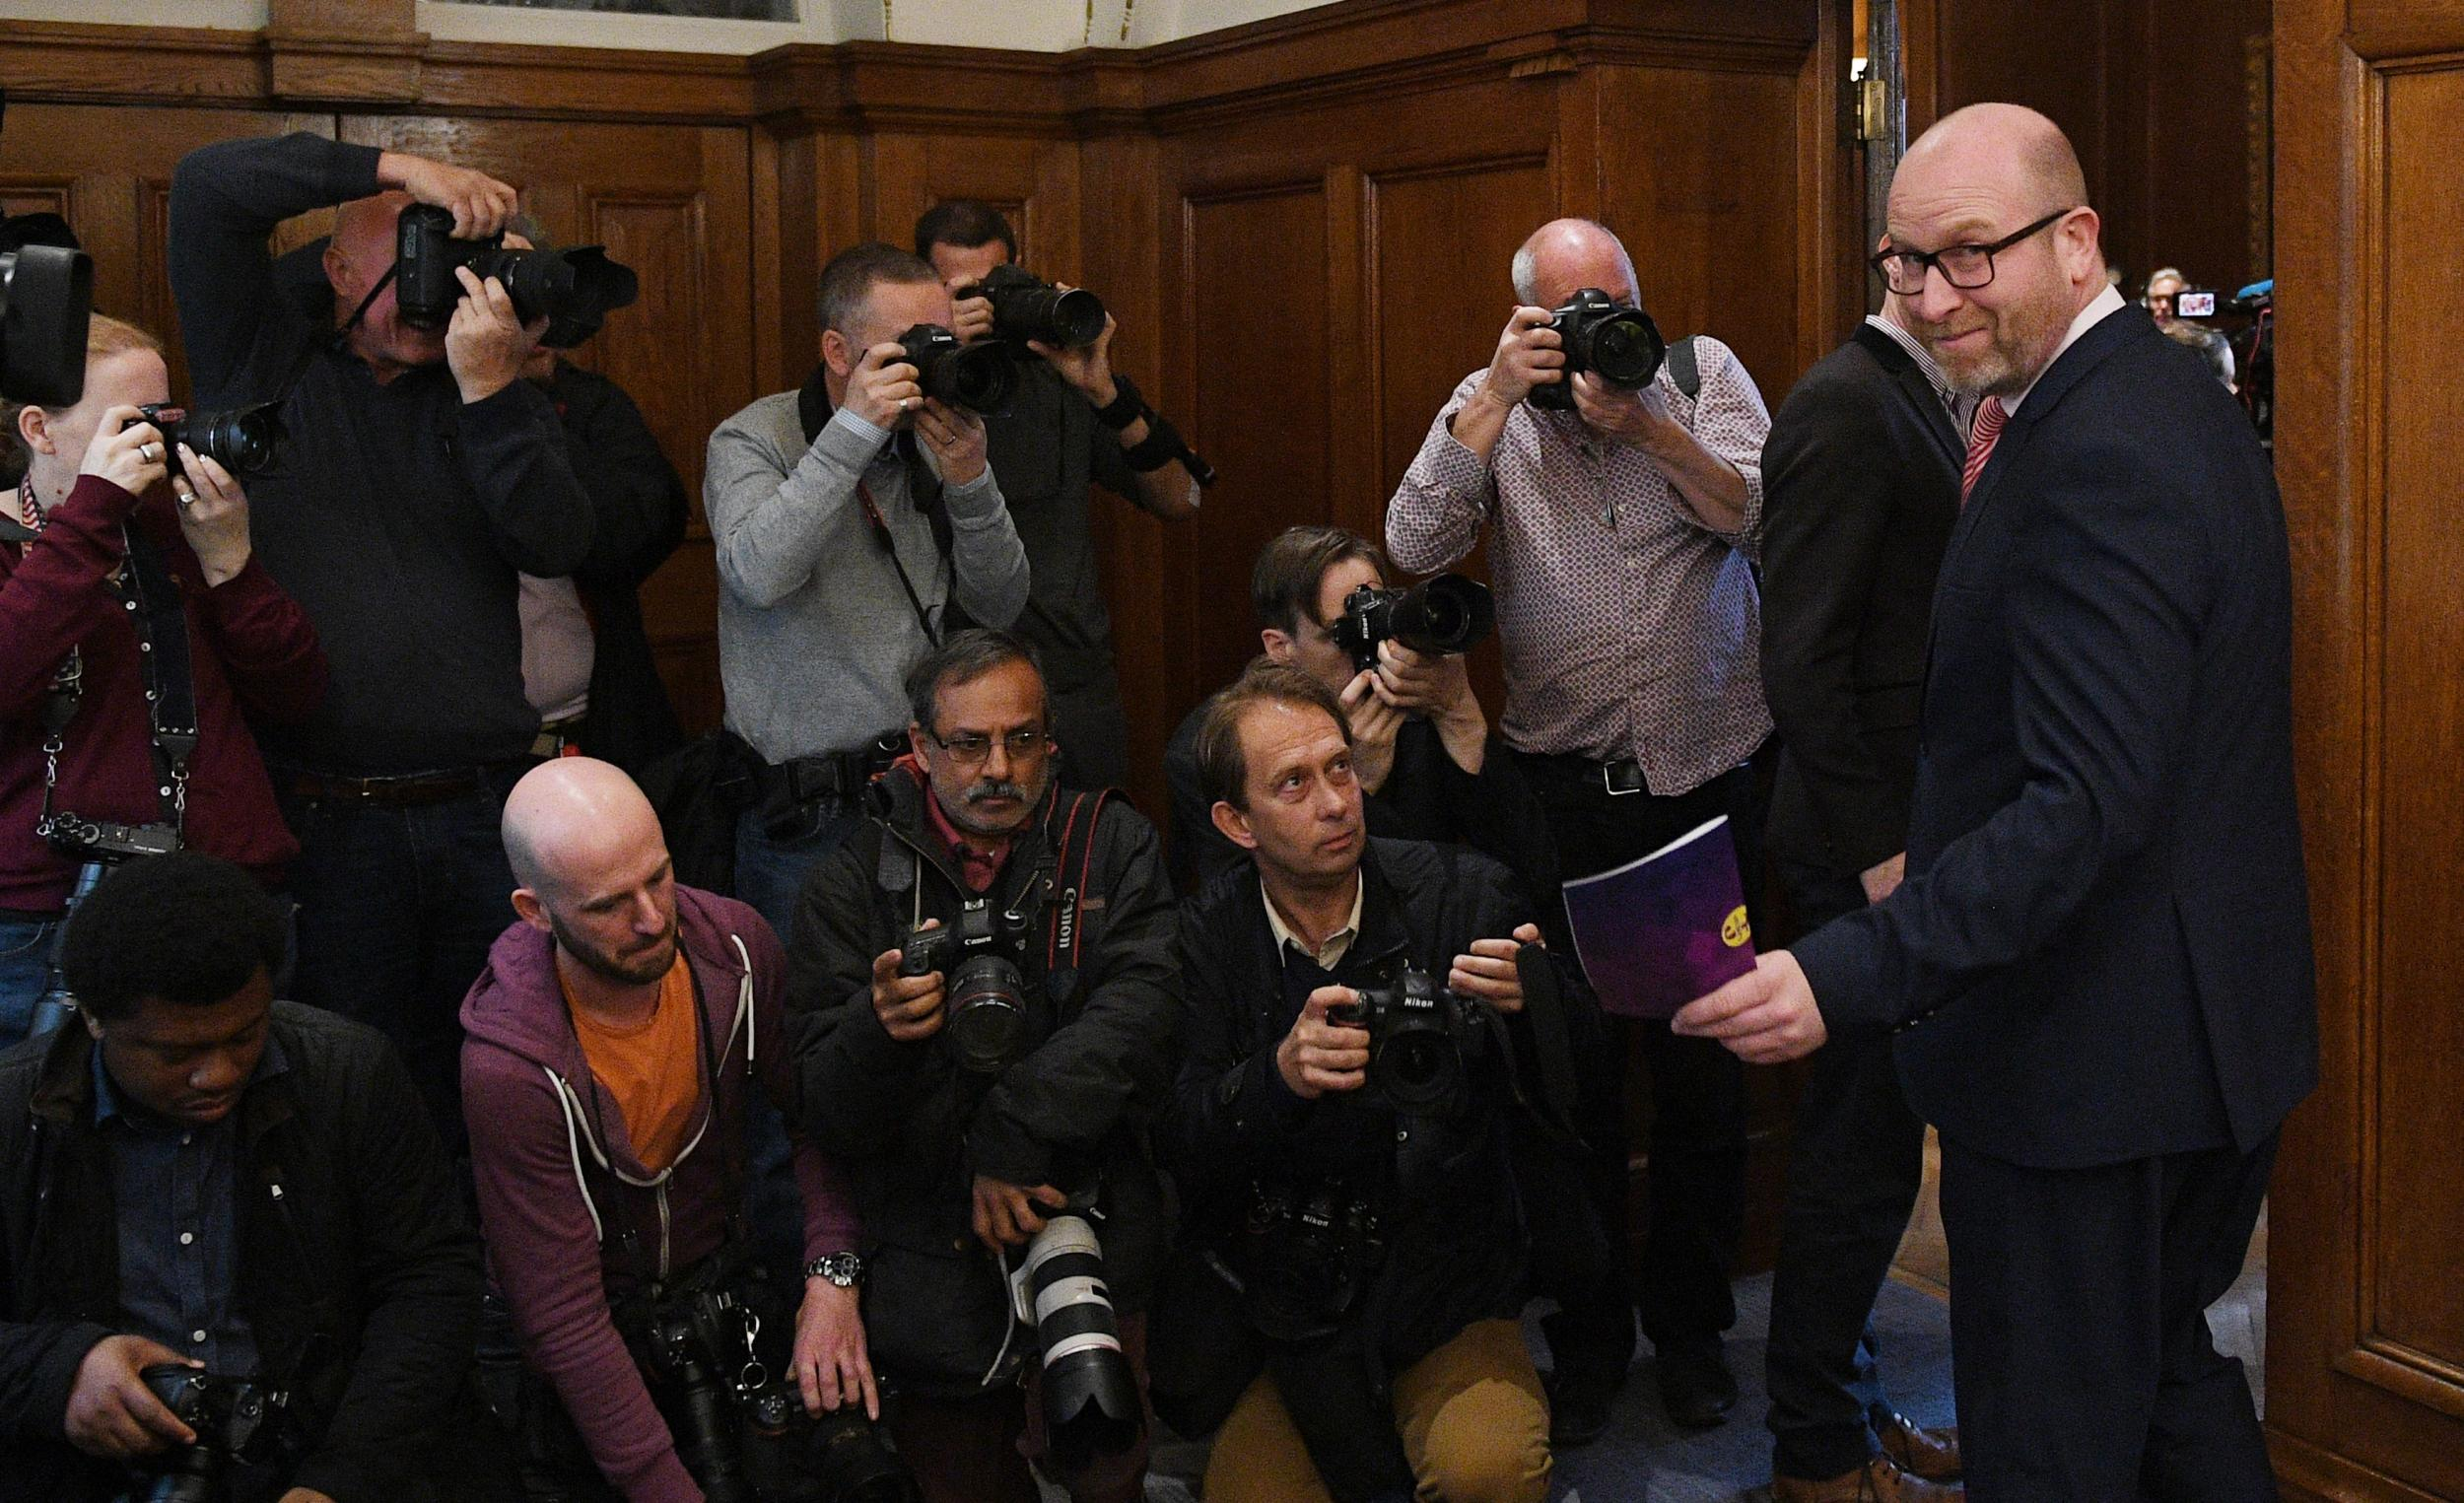 """Paul Nuttall barricades himself in hotel room to escape reporters. """""""